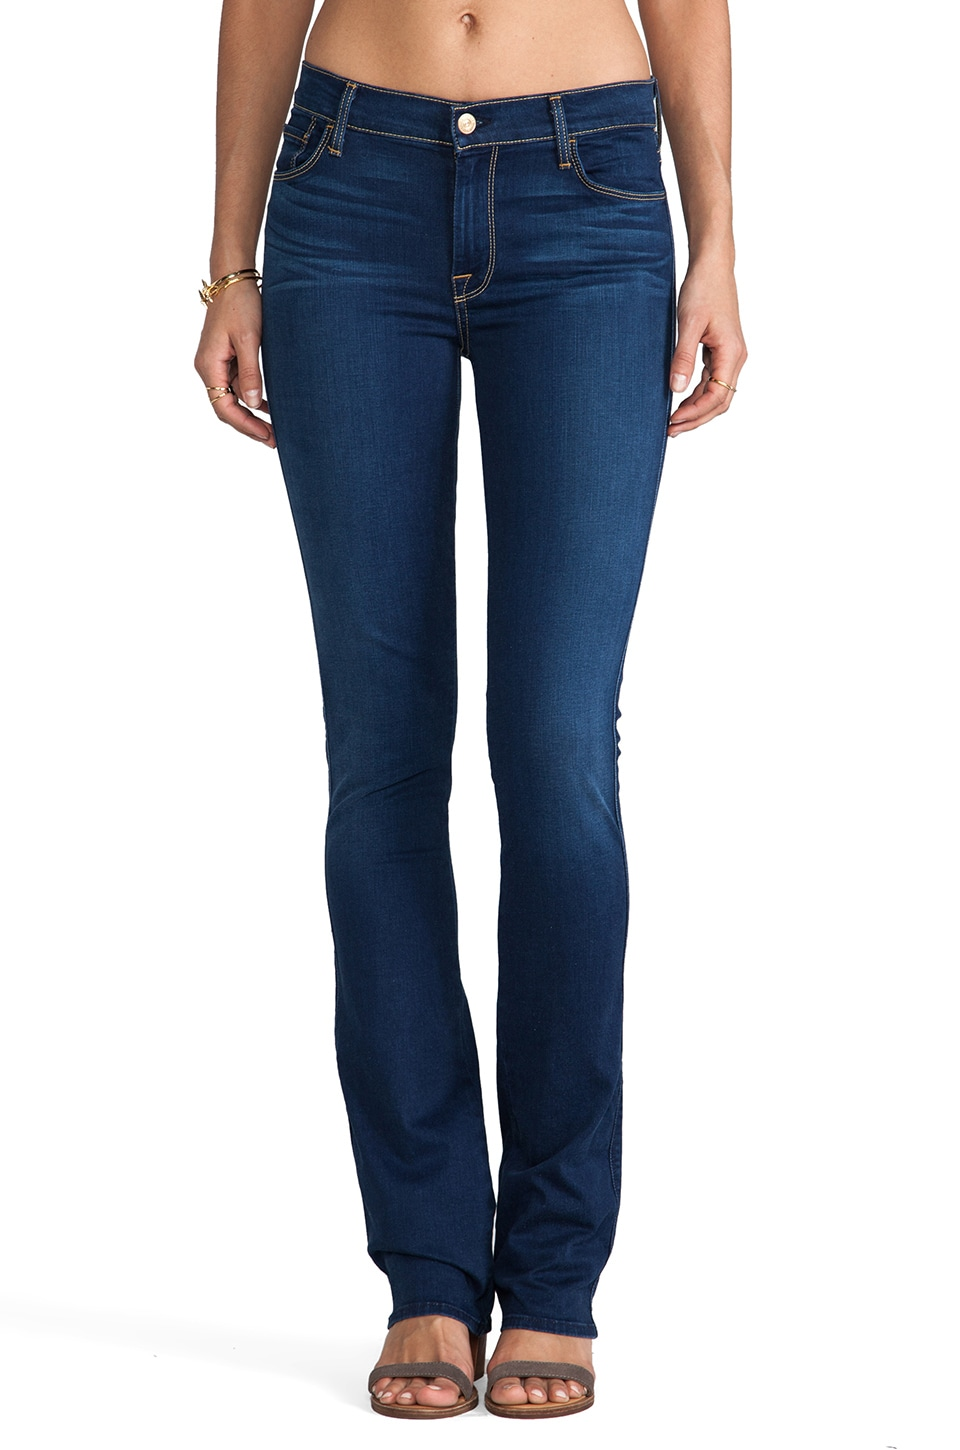 7 For All Mankind Skinny Boot cut in Bright Blue Sateen